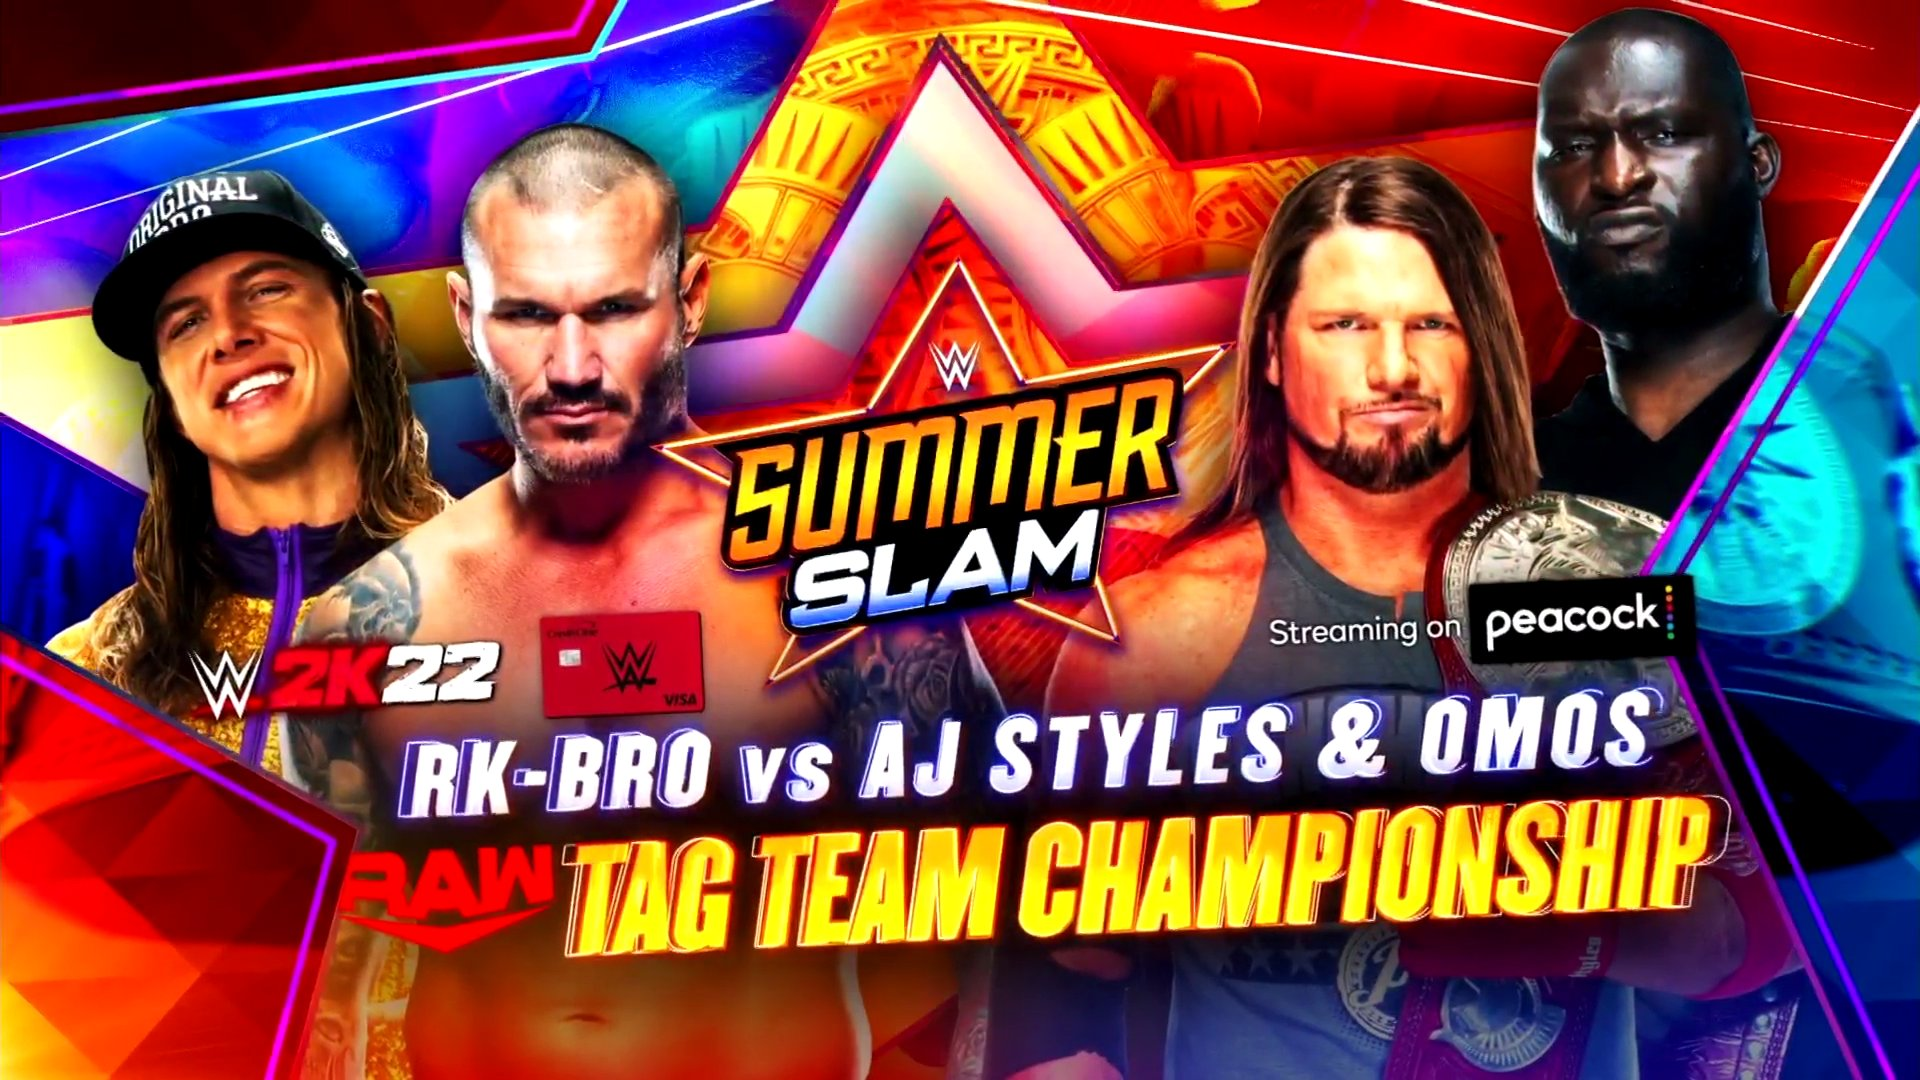 WWE Summerslam 2021: New Championship Match And More Announced 82